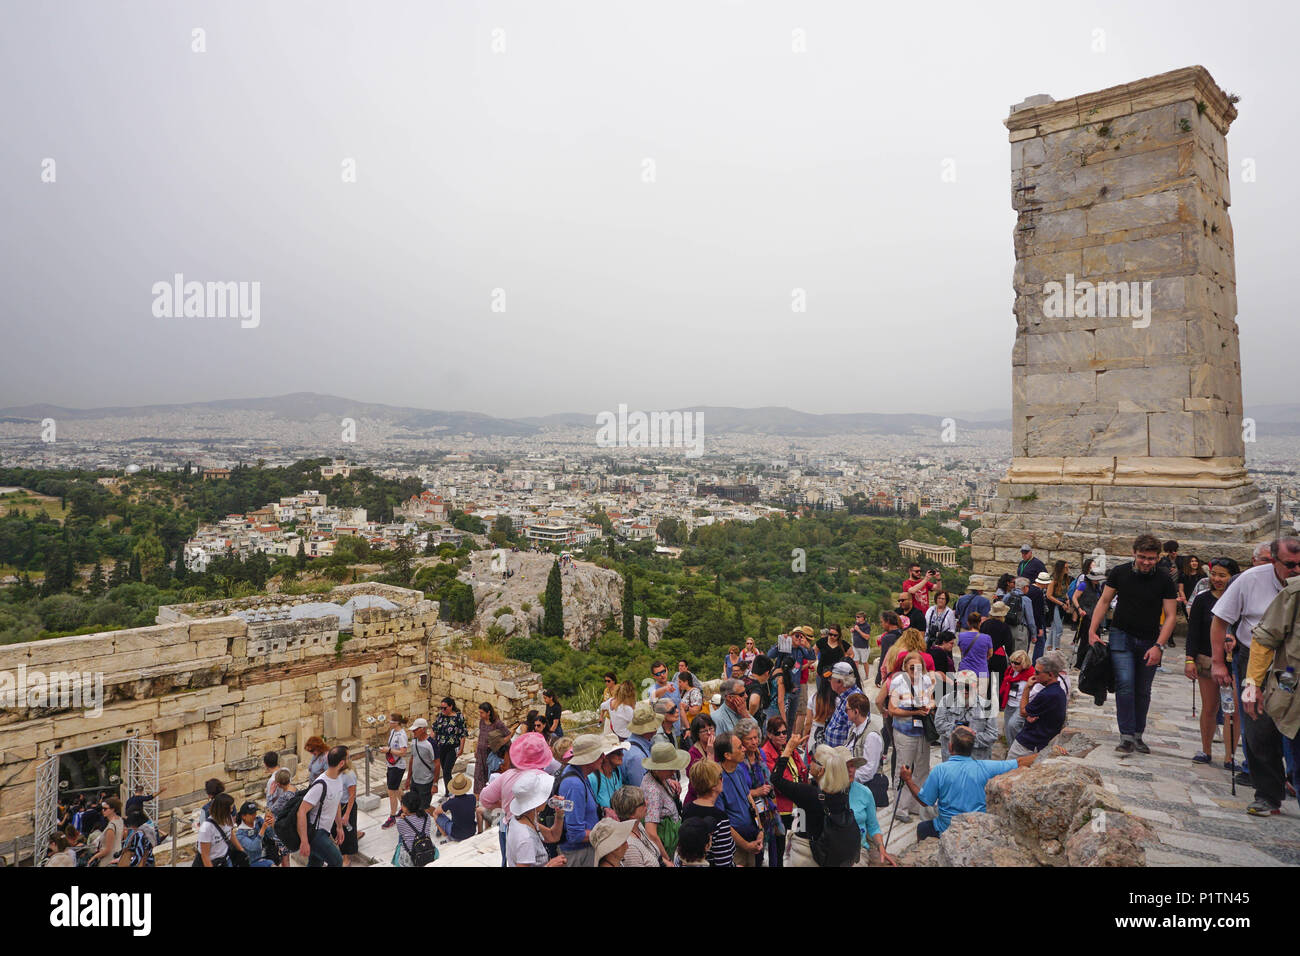 Athens, Greece - April 16, 2018: Tourists crowd the entrance of the Acropolis of Athens, under a hazy sky. The Roman-era Beulé Gate is on the right. - Stock Image